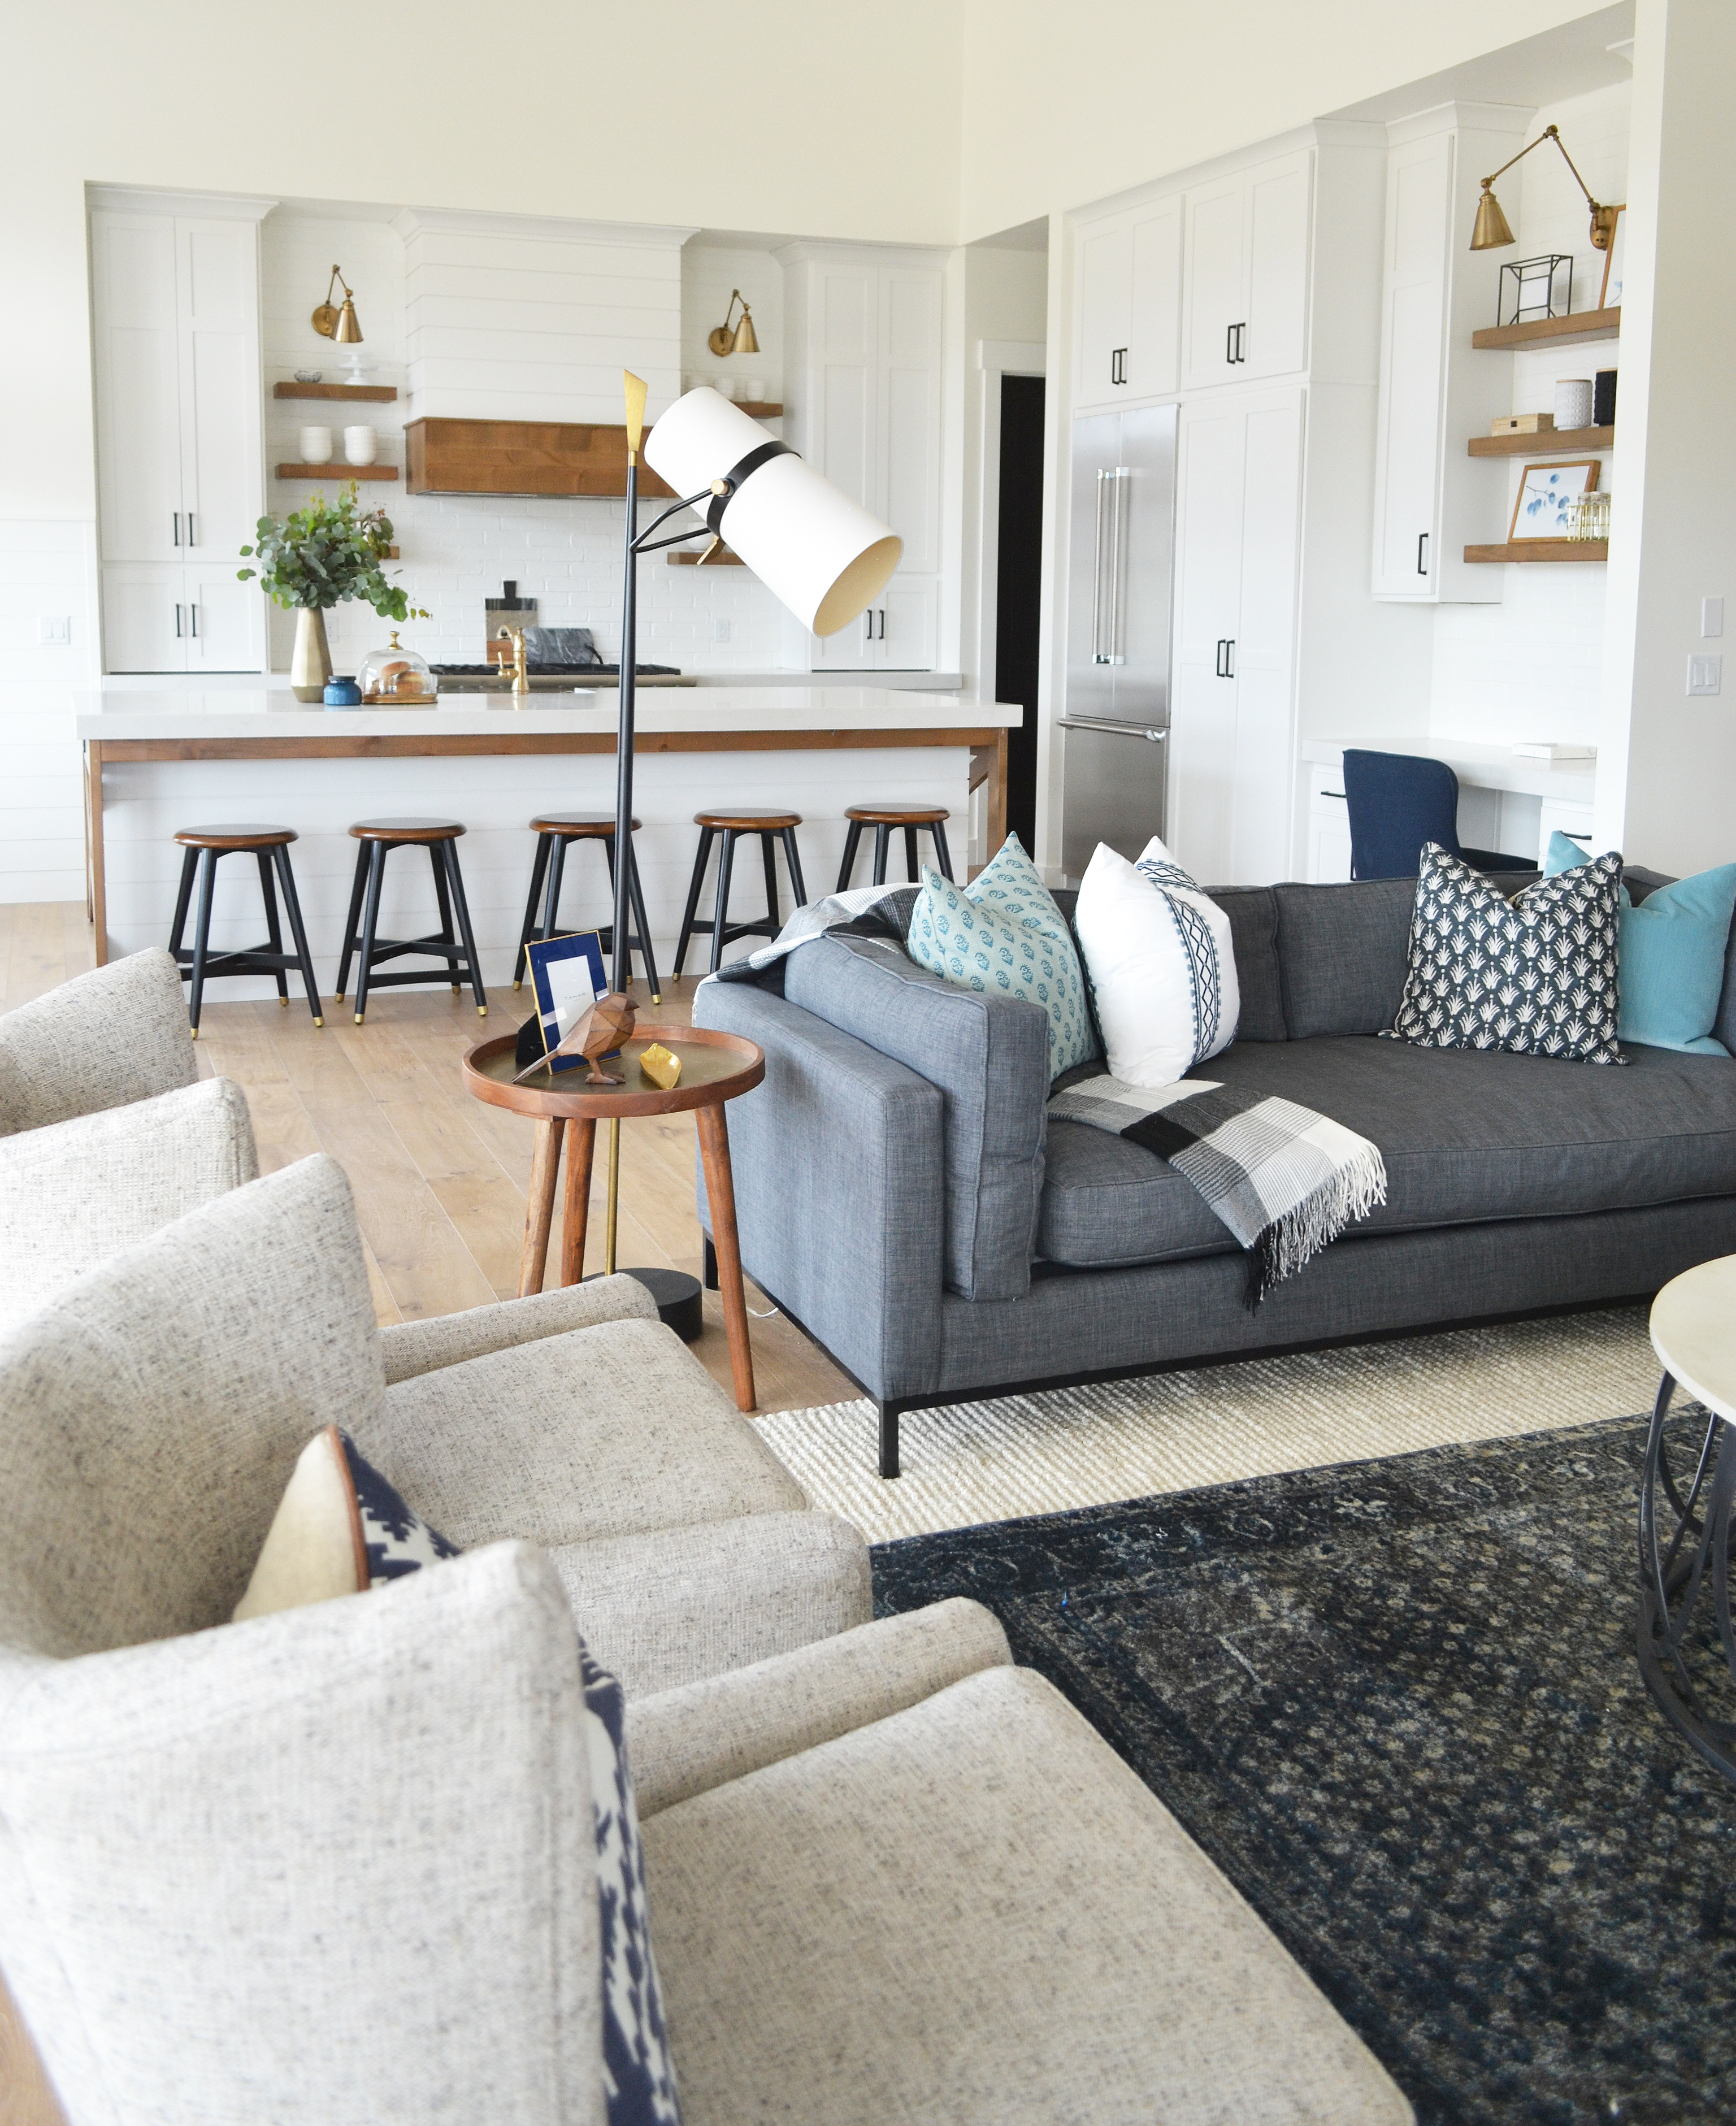 Smi modern farmhouse kitchen and dining nook sita montgomery interiors - Dark gray sofa ideas ...